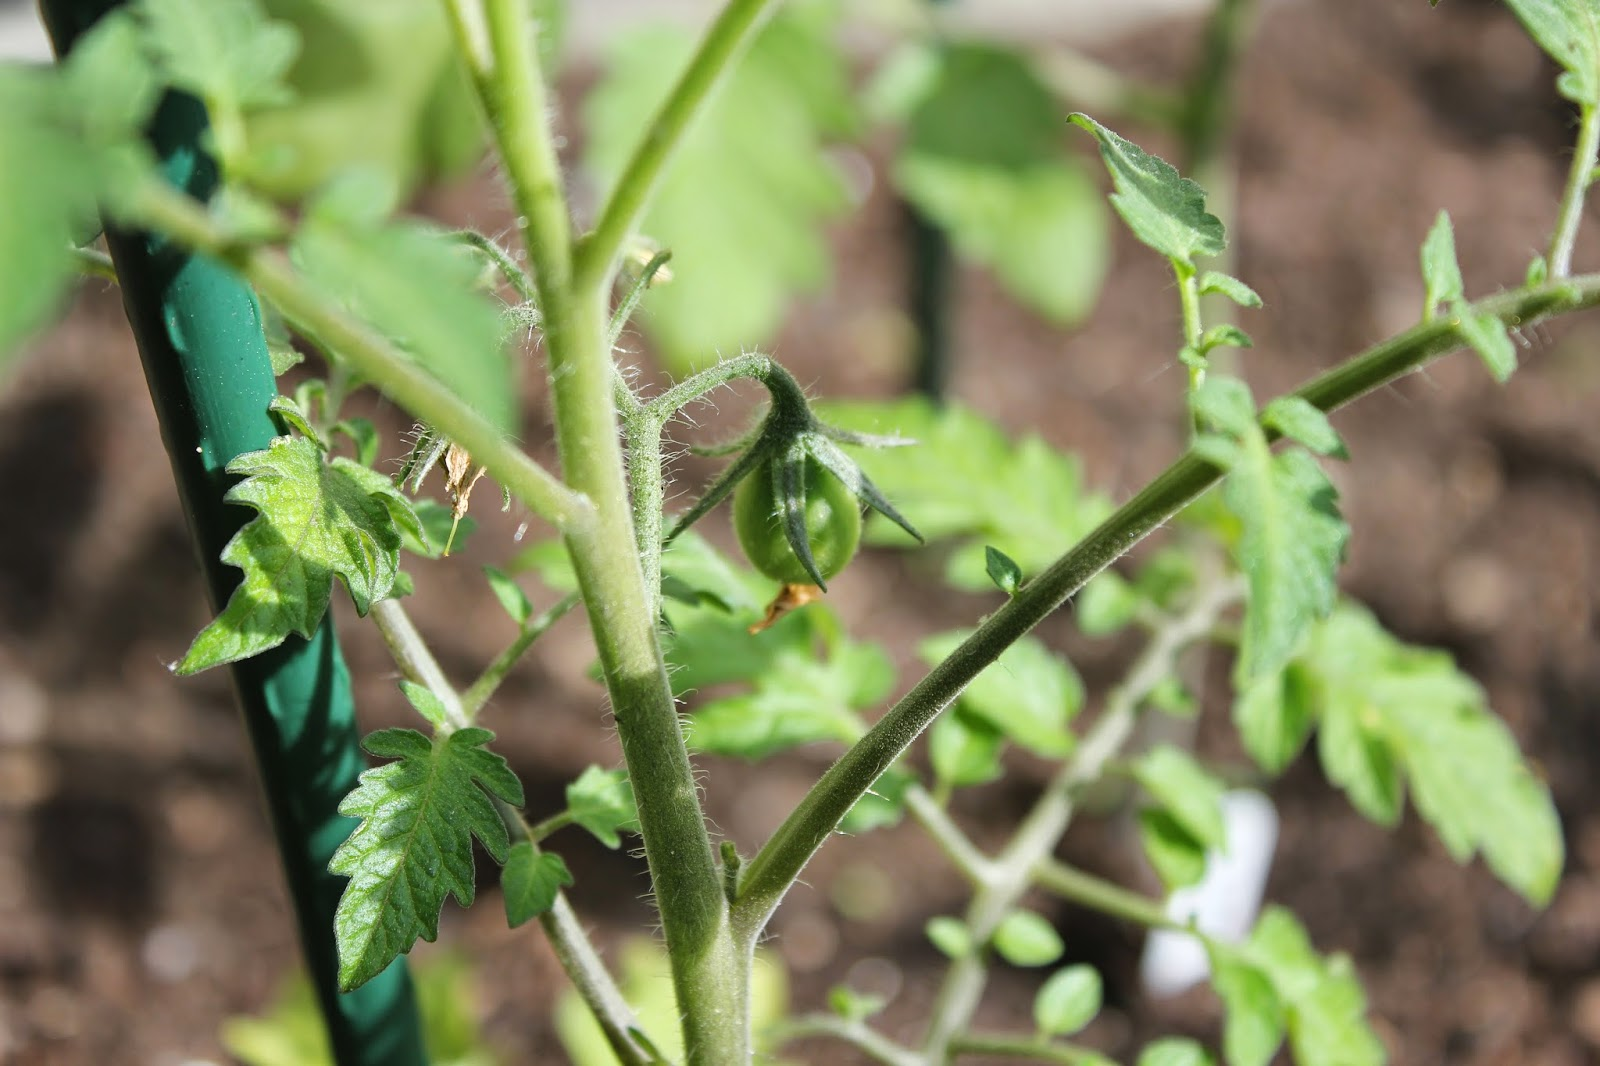 Megan from Delicious Dishings' tomato plants, June 14, 2014